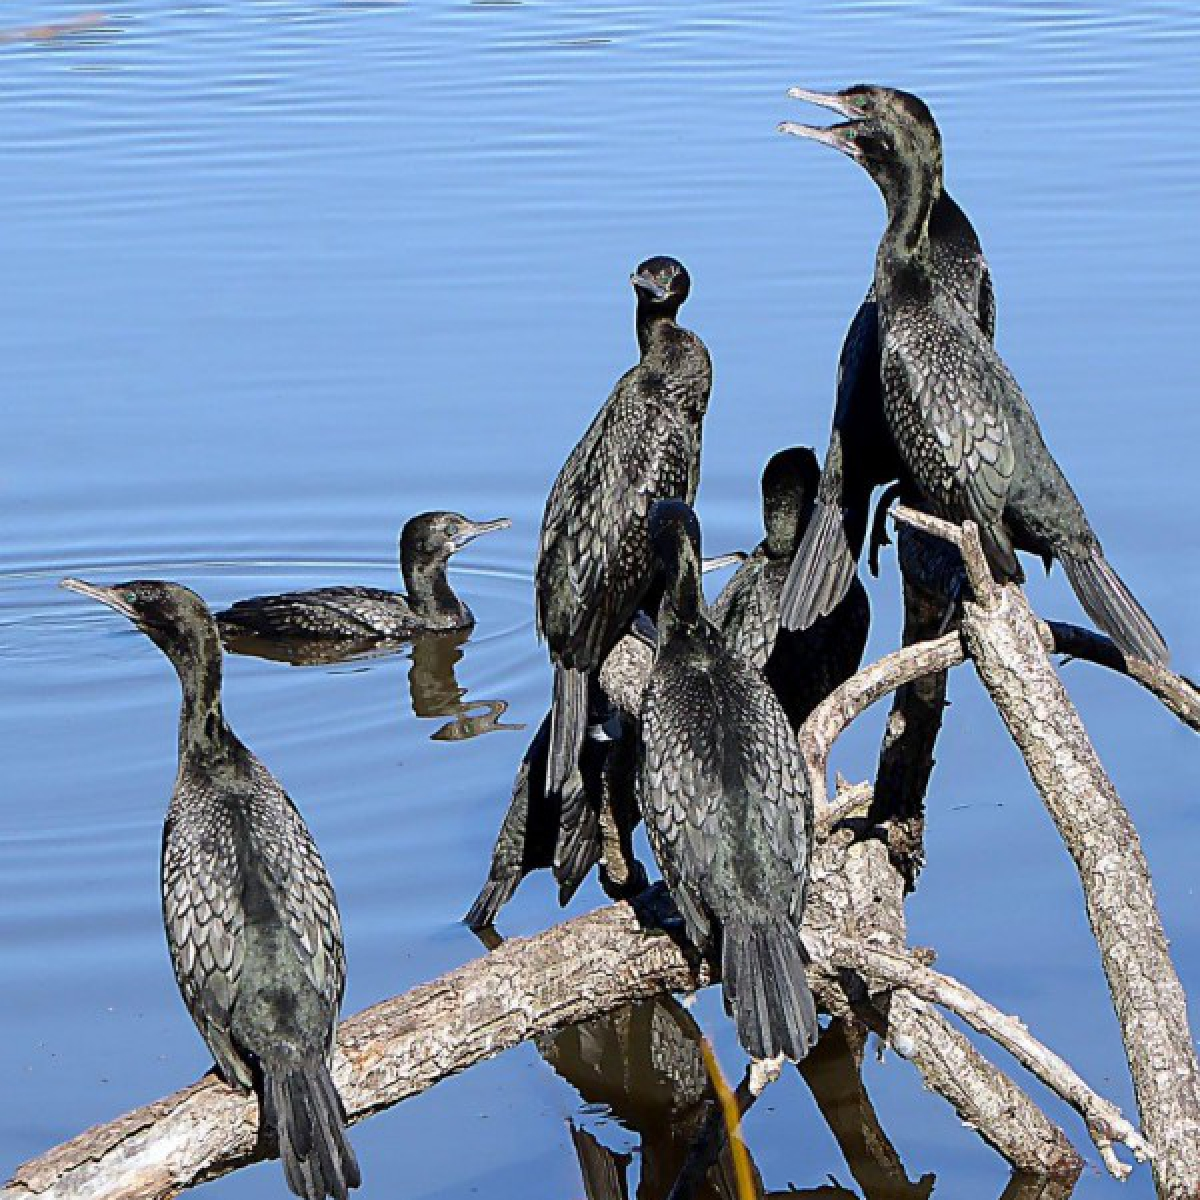 183 Little Black Cormorant